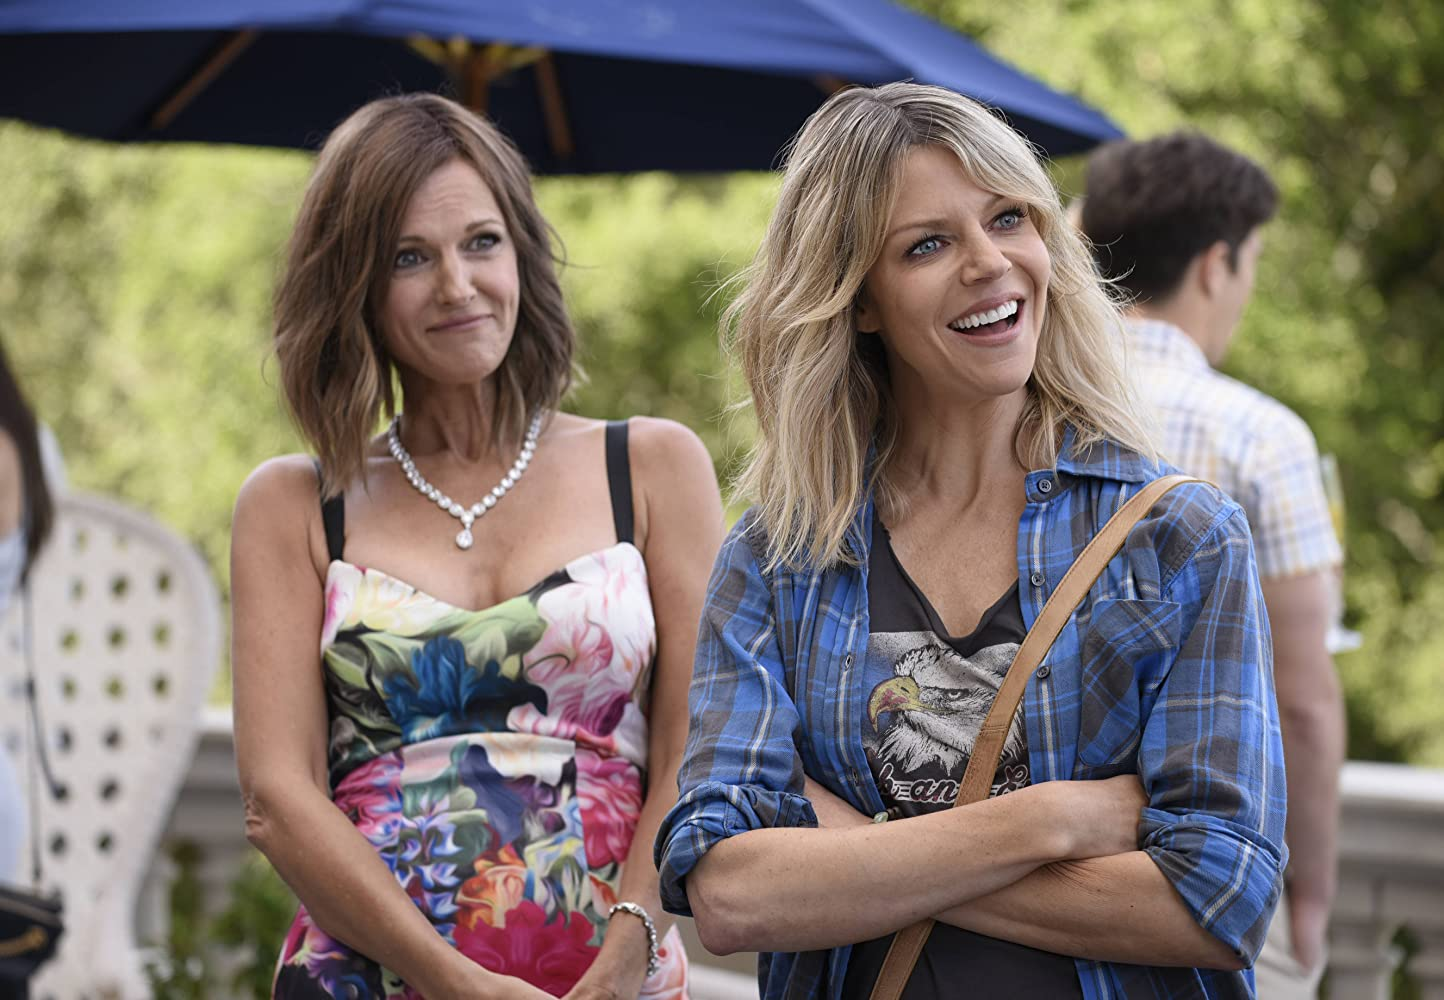 Tricia O'Kelley and Kaitlin Olson in The Mick (2017)